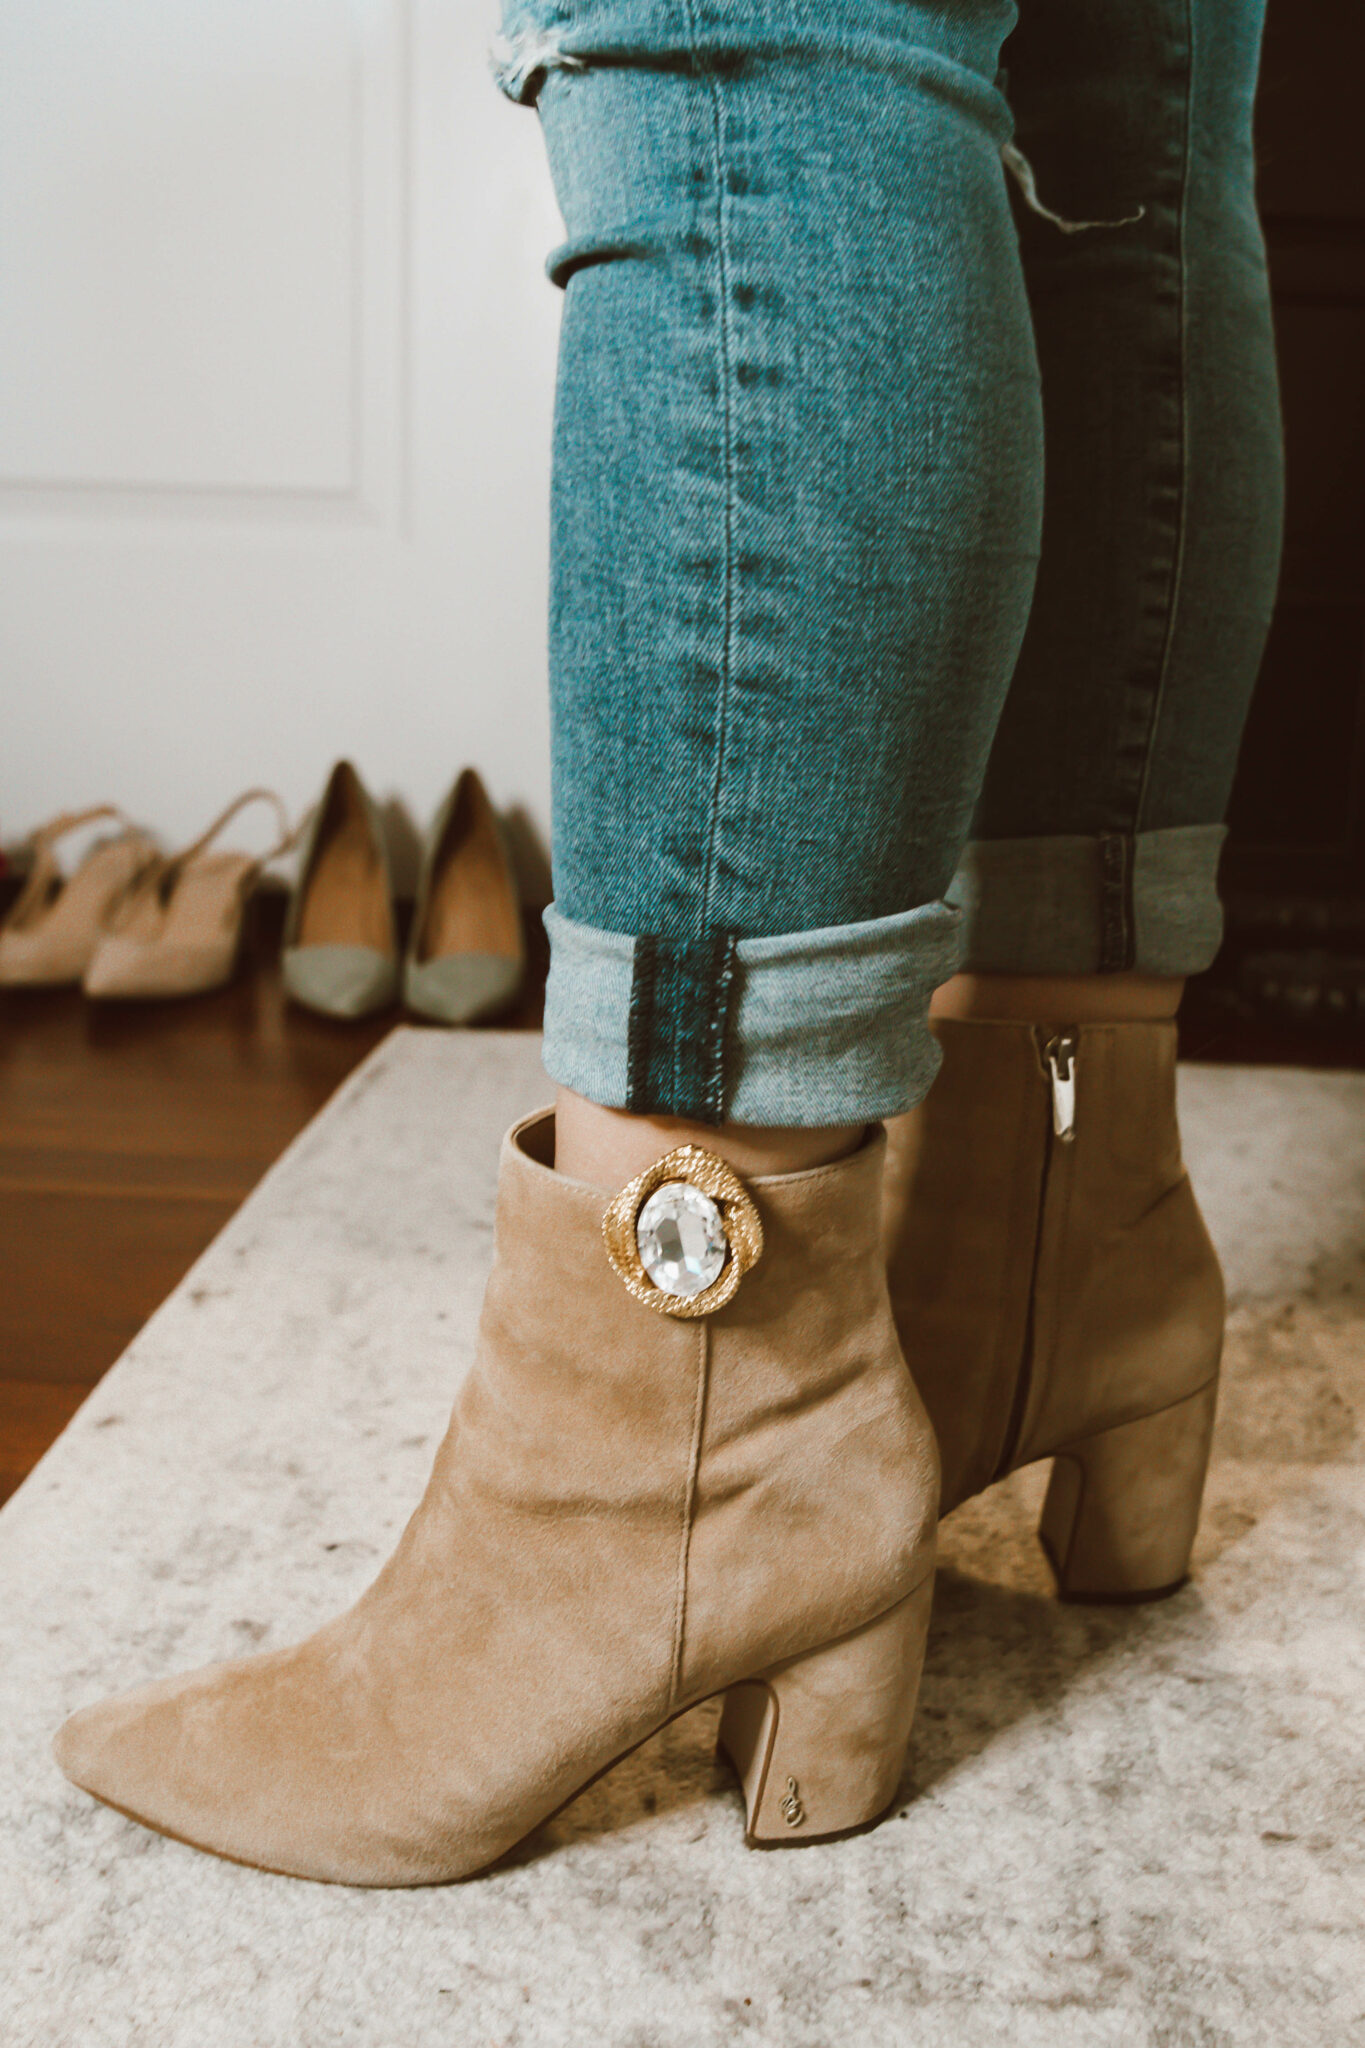 Clip On Earrings by popular Chicago fashion blog, Glass of Glam: image of a woman wearing brown suede ankle boots with clip on earrings attached to them.